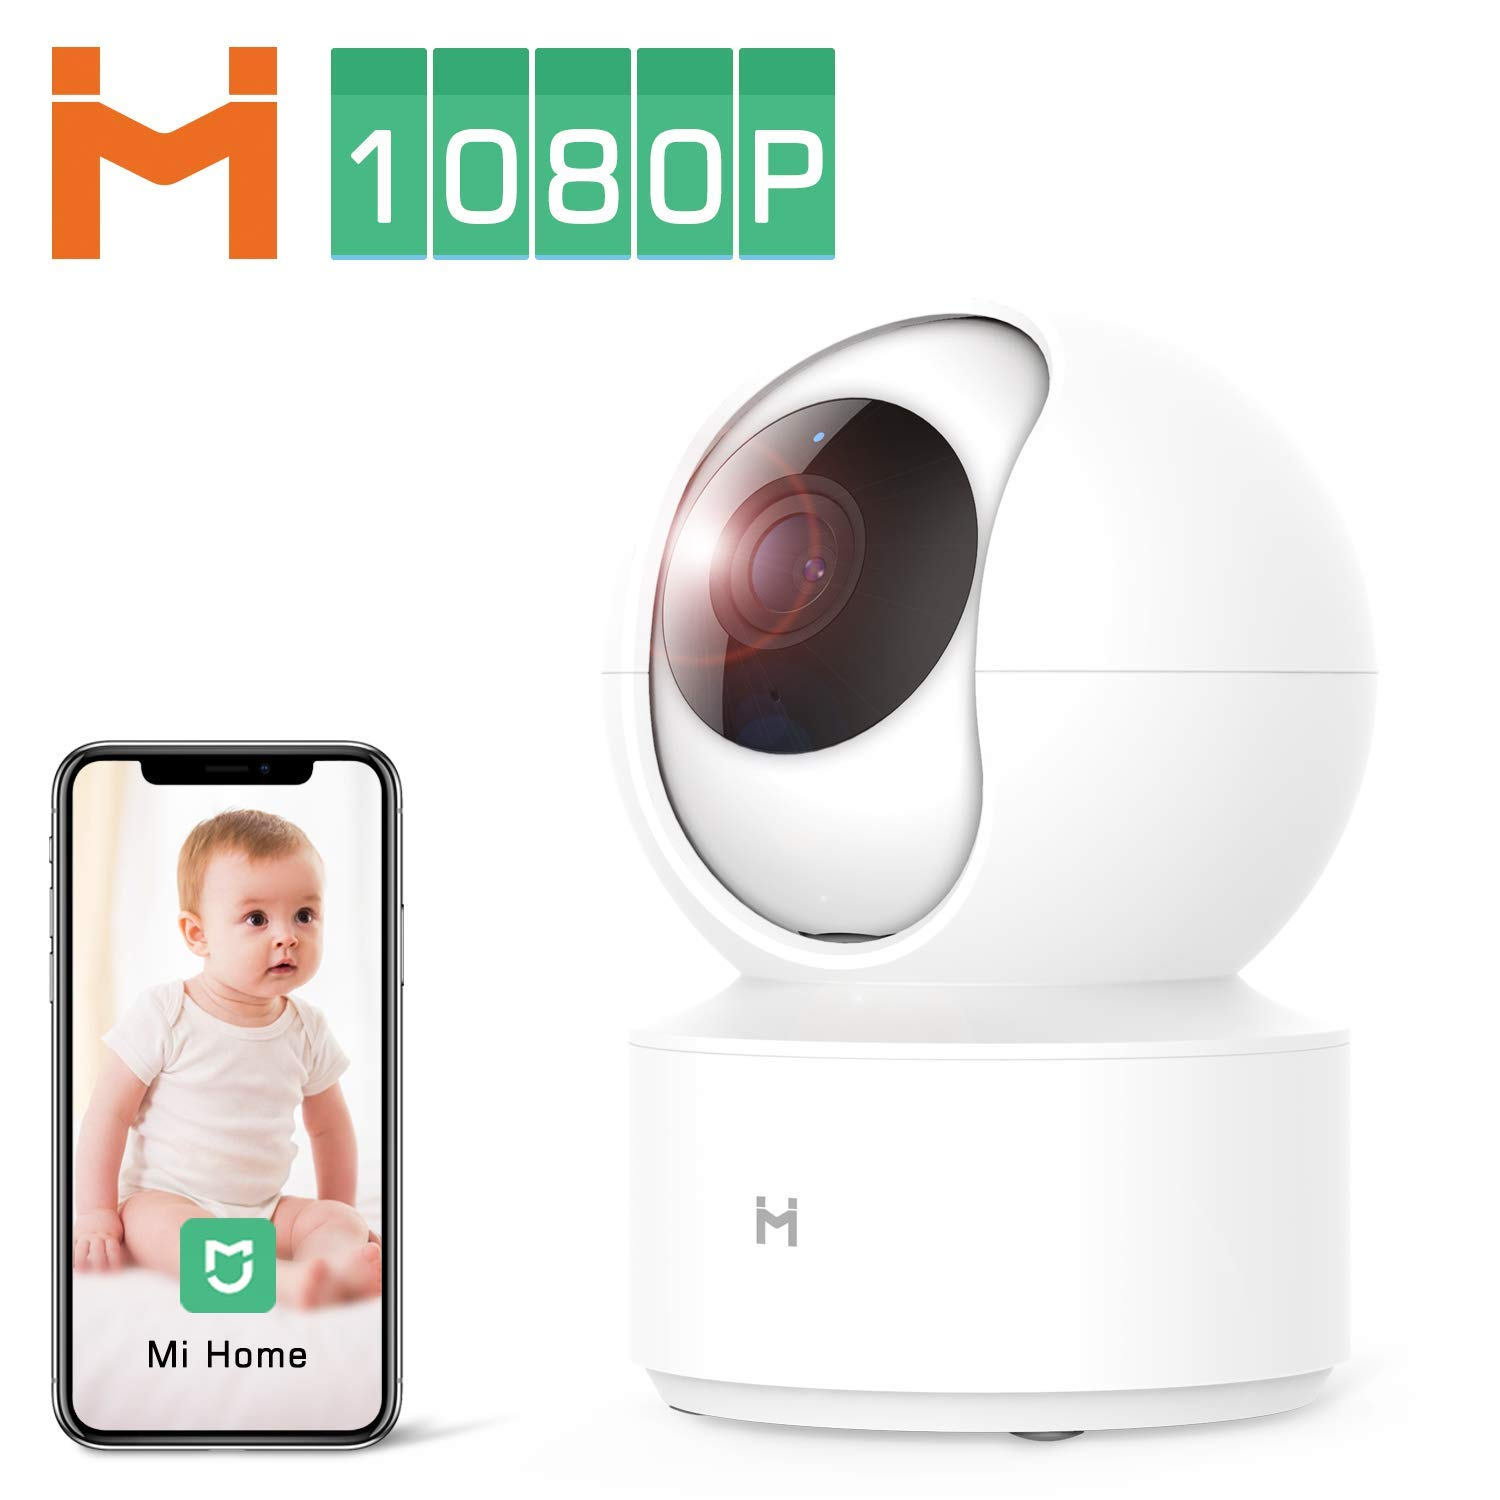 1080P Wireless Smart Home Indoor Baby IP Security Xiaomi Camera,2.4Ghz WiFi Surveillance Dome Camera Pet Nanny Monitor with 4 X Zoom,Two-Way Audio,Night Vision,Pan/Tilt,Remote View No SD Card by IMI